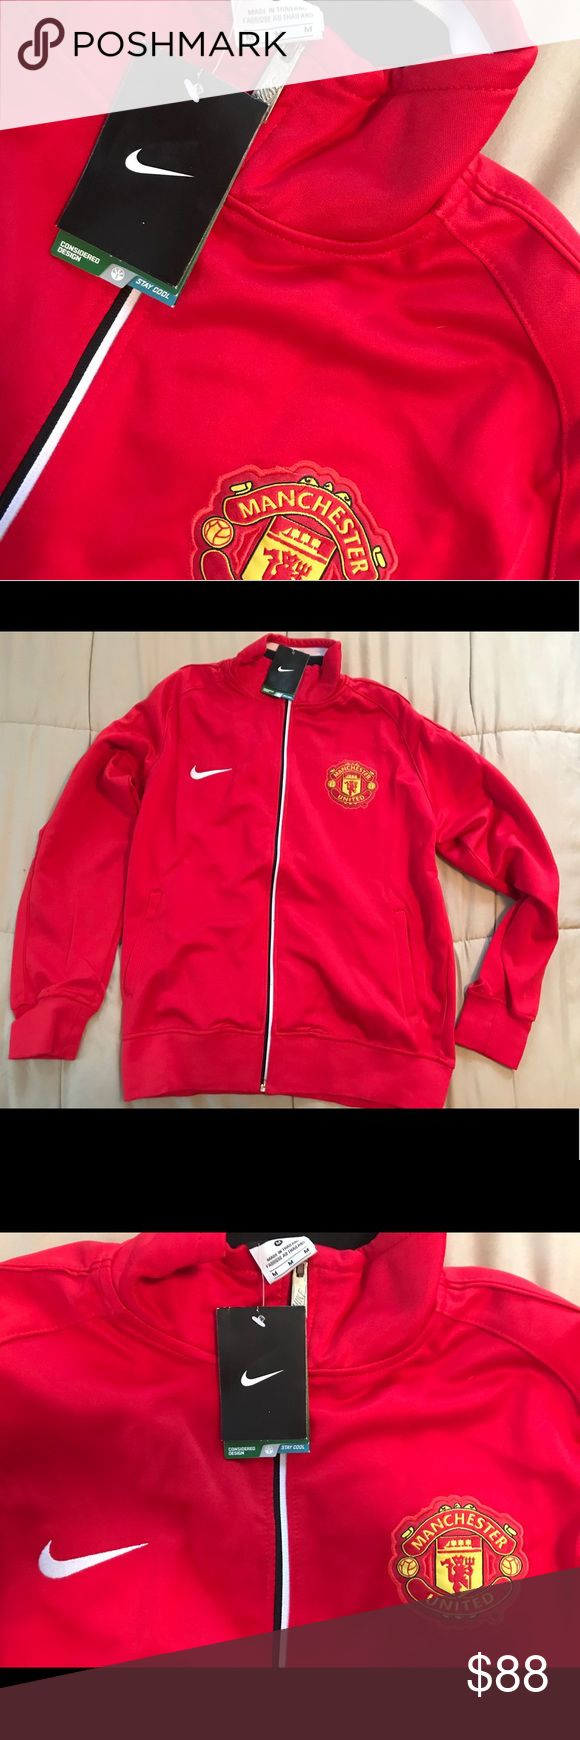 Nike Manchester United Jacket Mens Medium Nike Manchester United track jacket - Men's medium - brand news original tags still attached Nike Jackets & Coats Utility Jackets